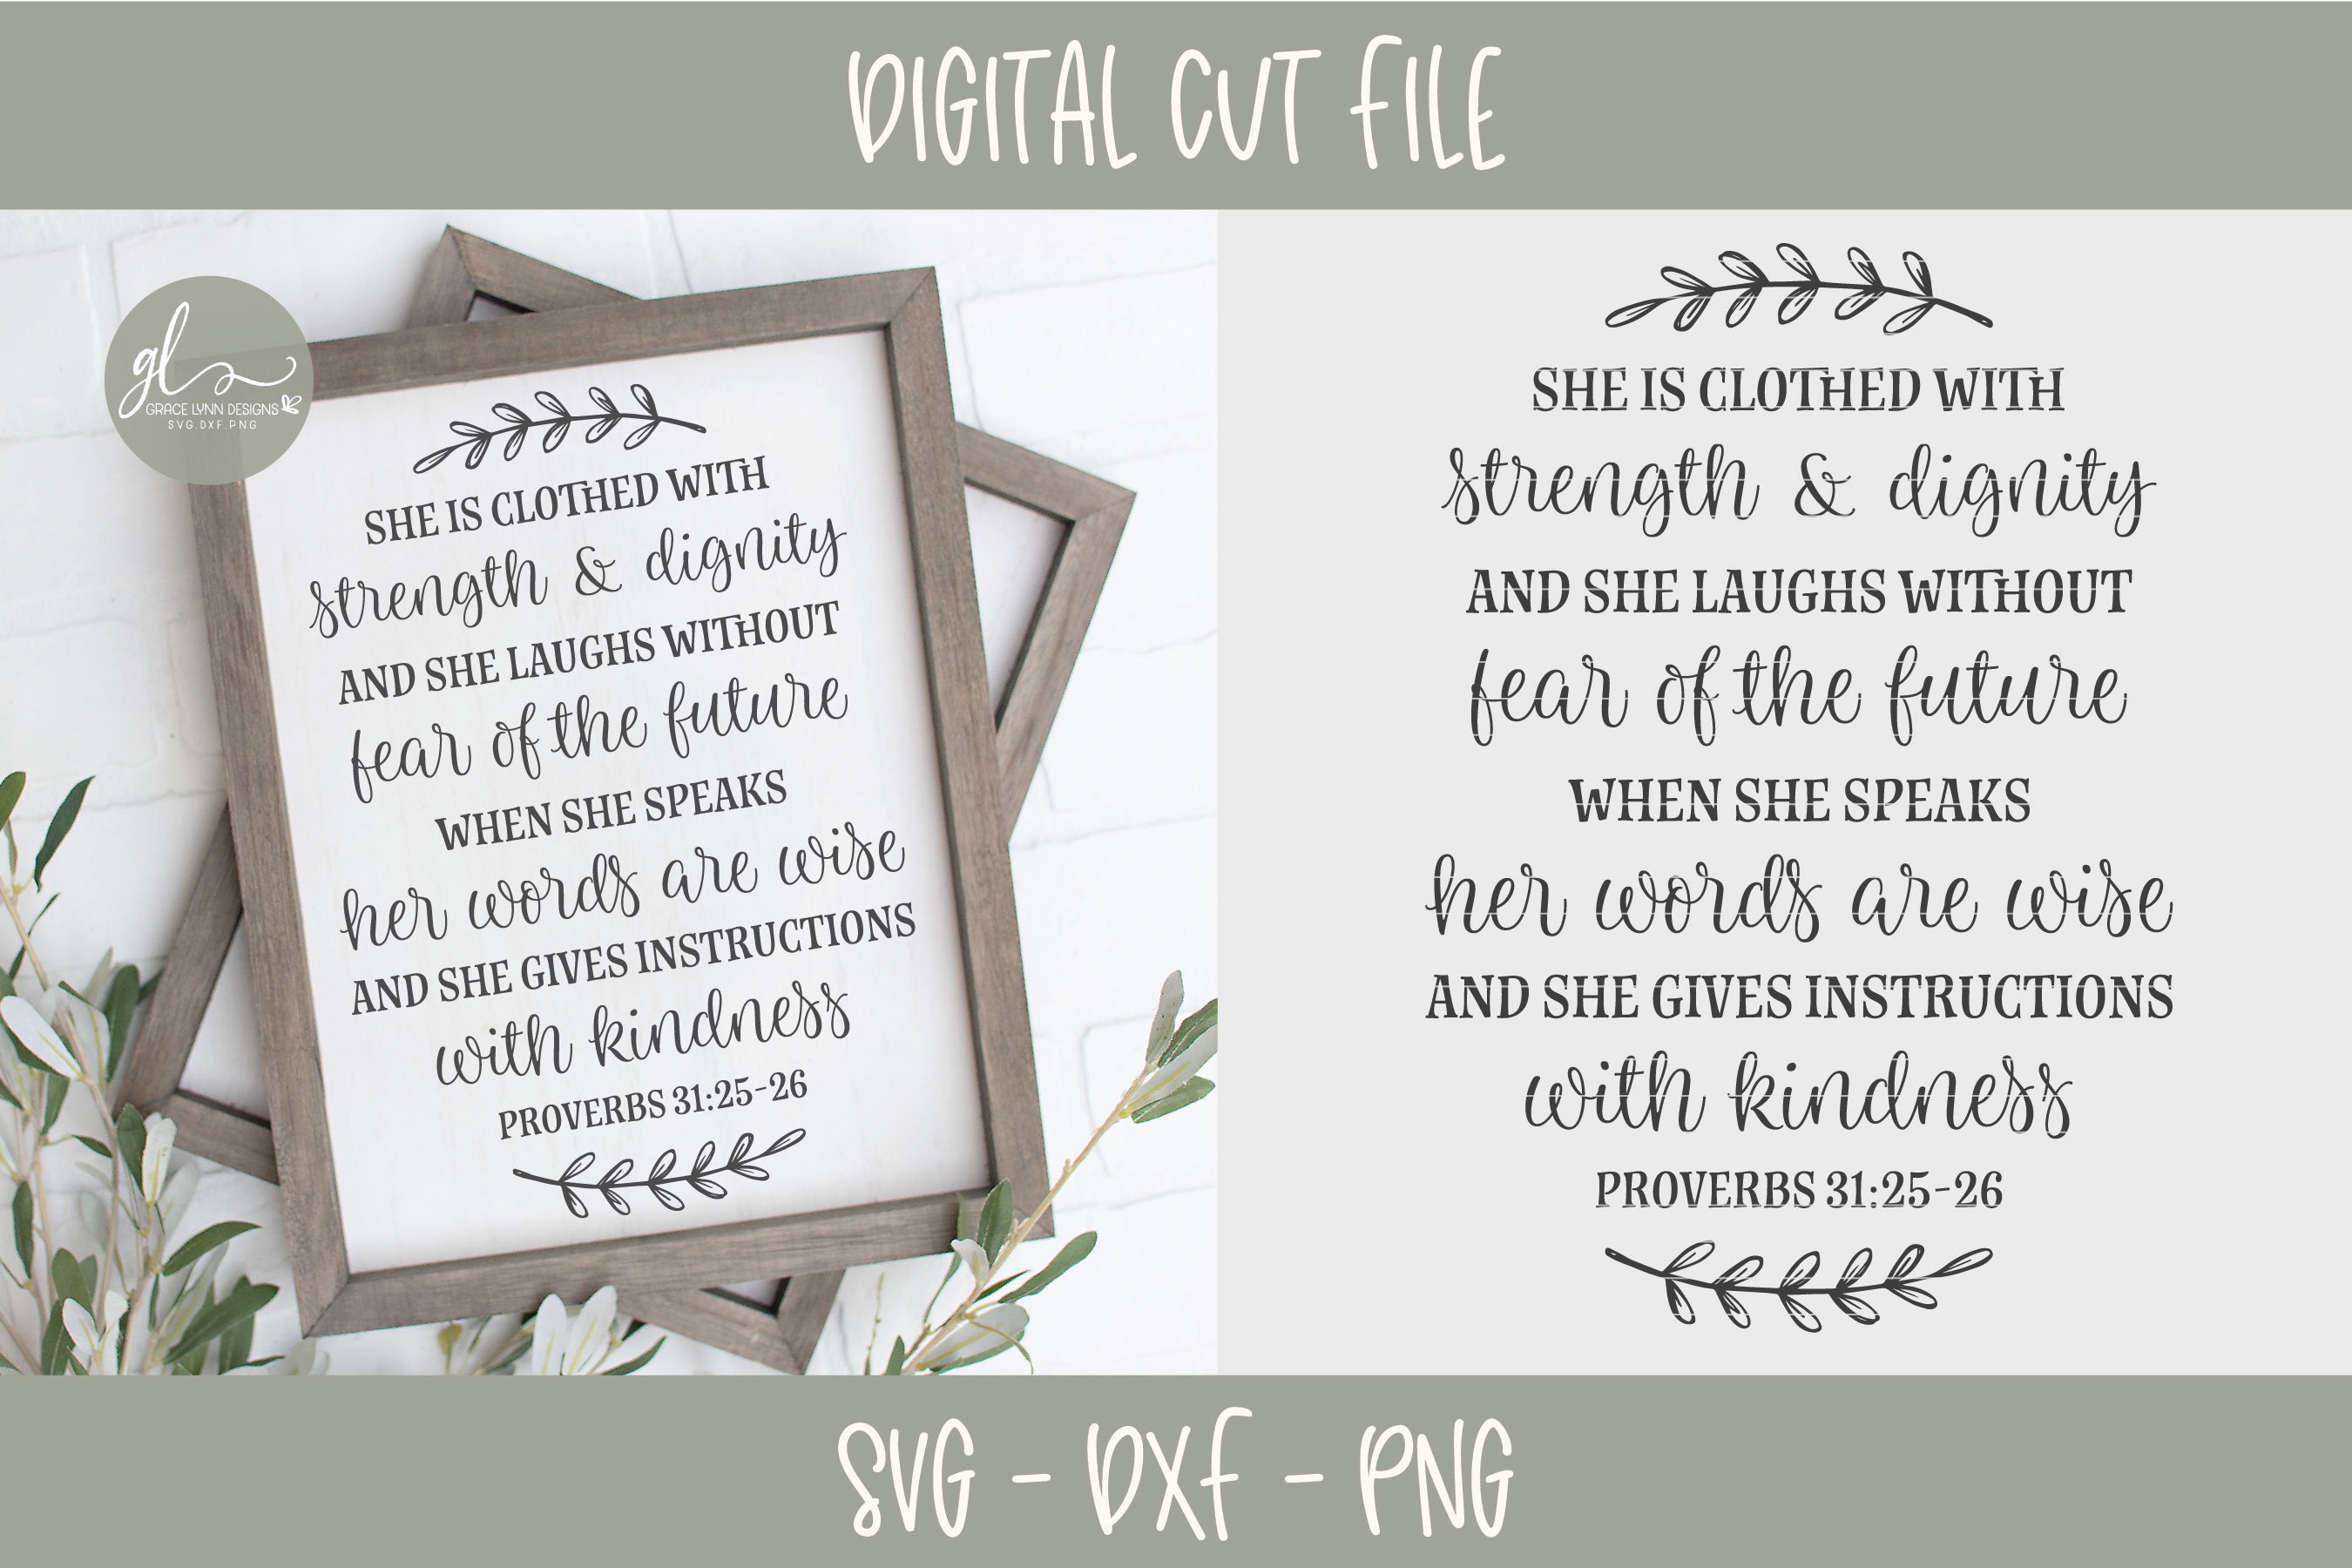 She Is Clothed With Strength & Dignity - Scripture SVG example image 1